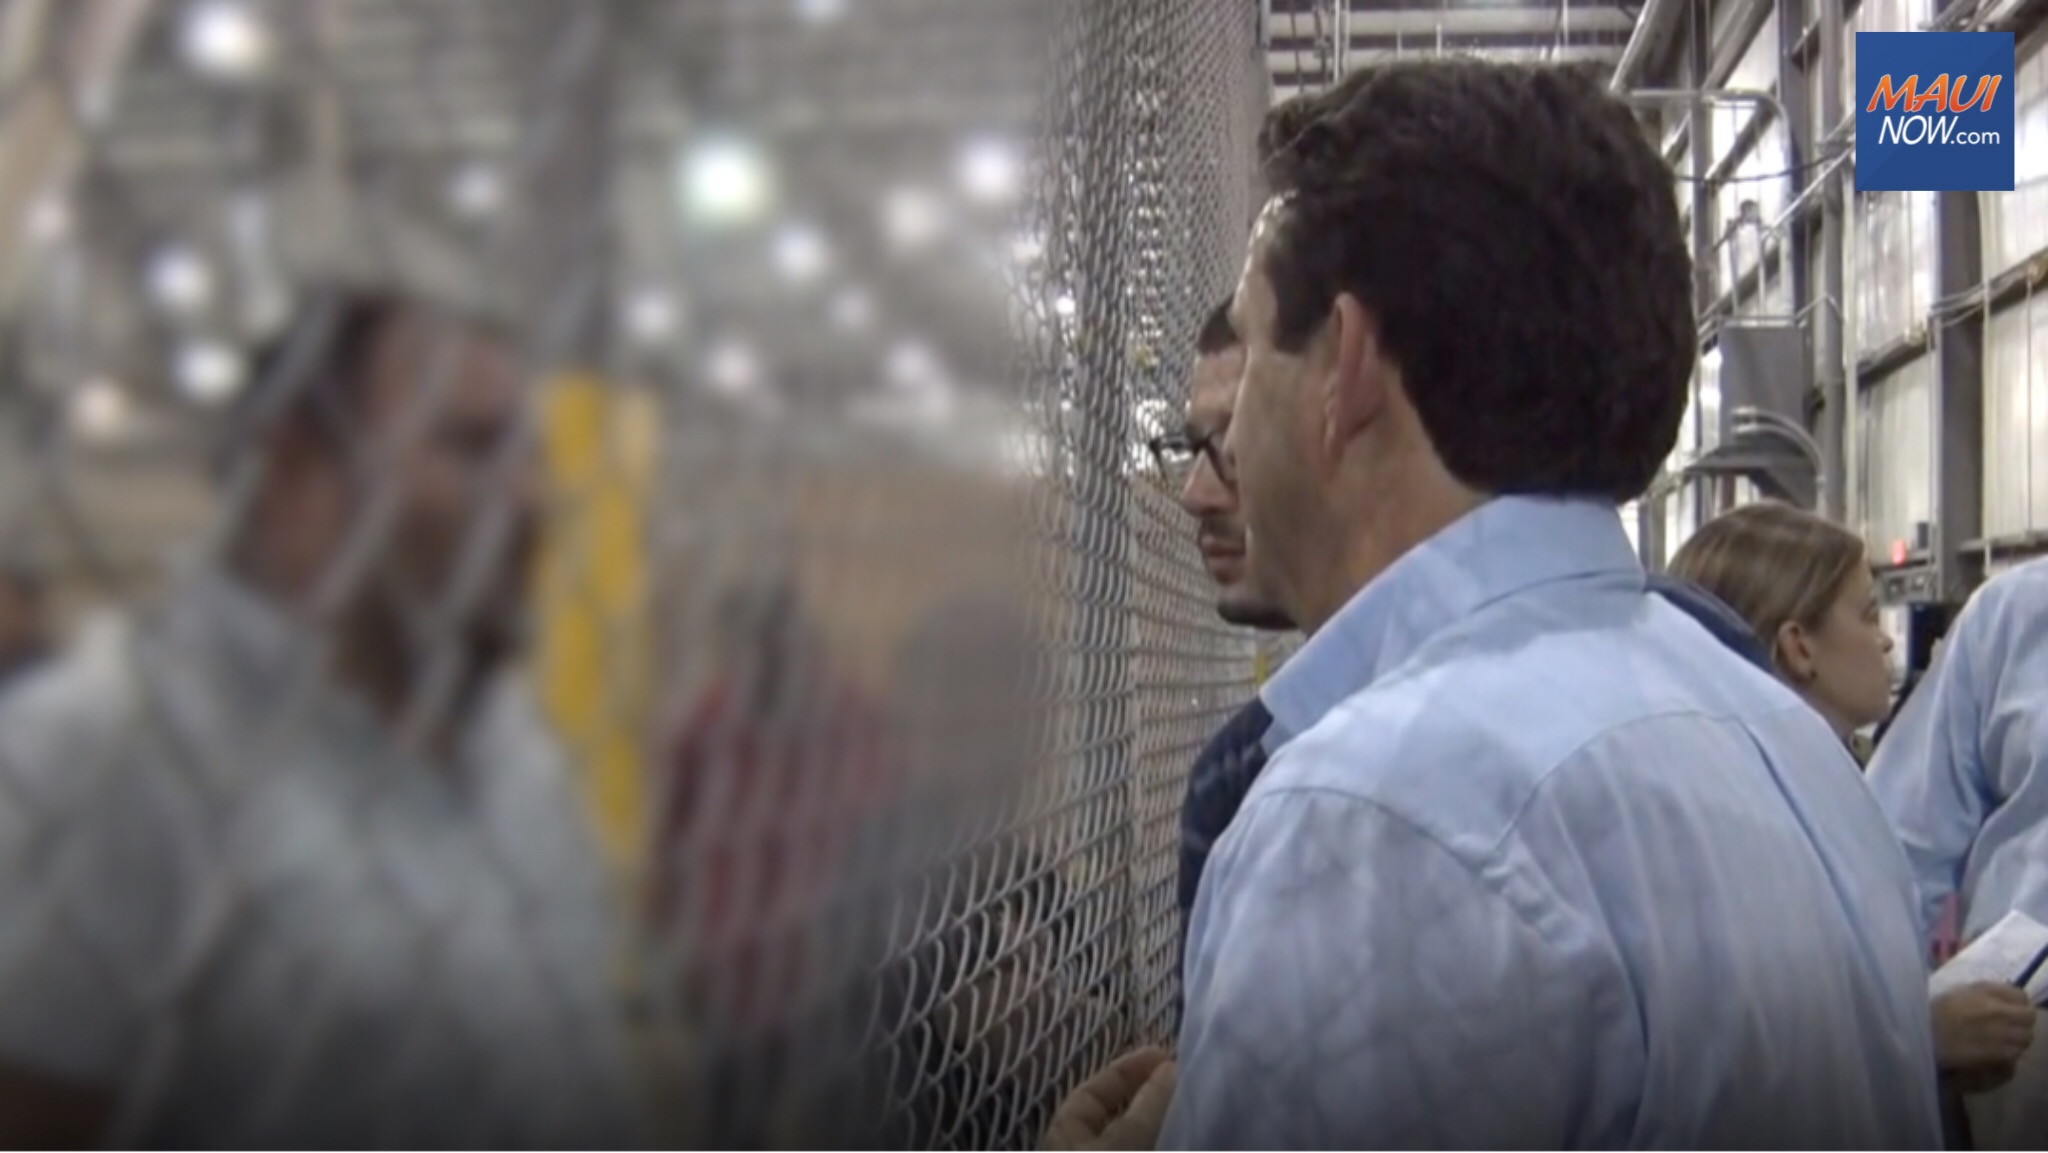 Sen. Schatz Visits Southern Border, Evaluates Conditions